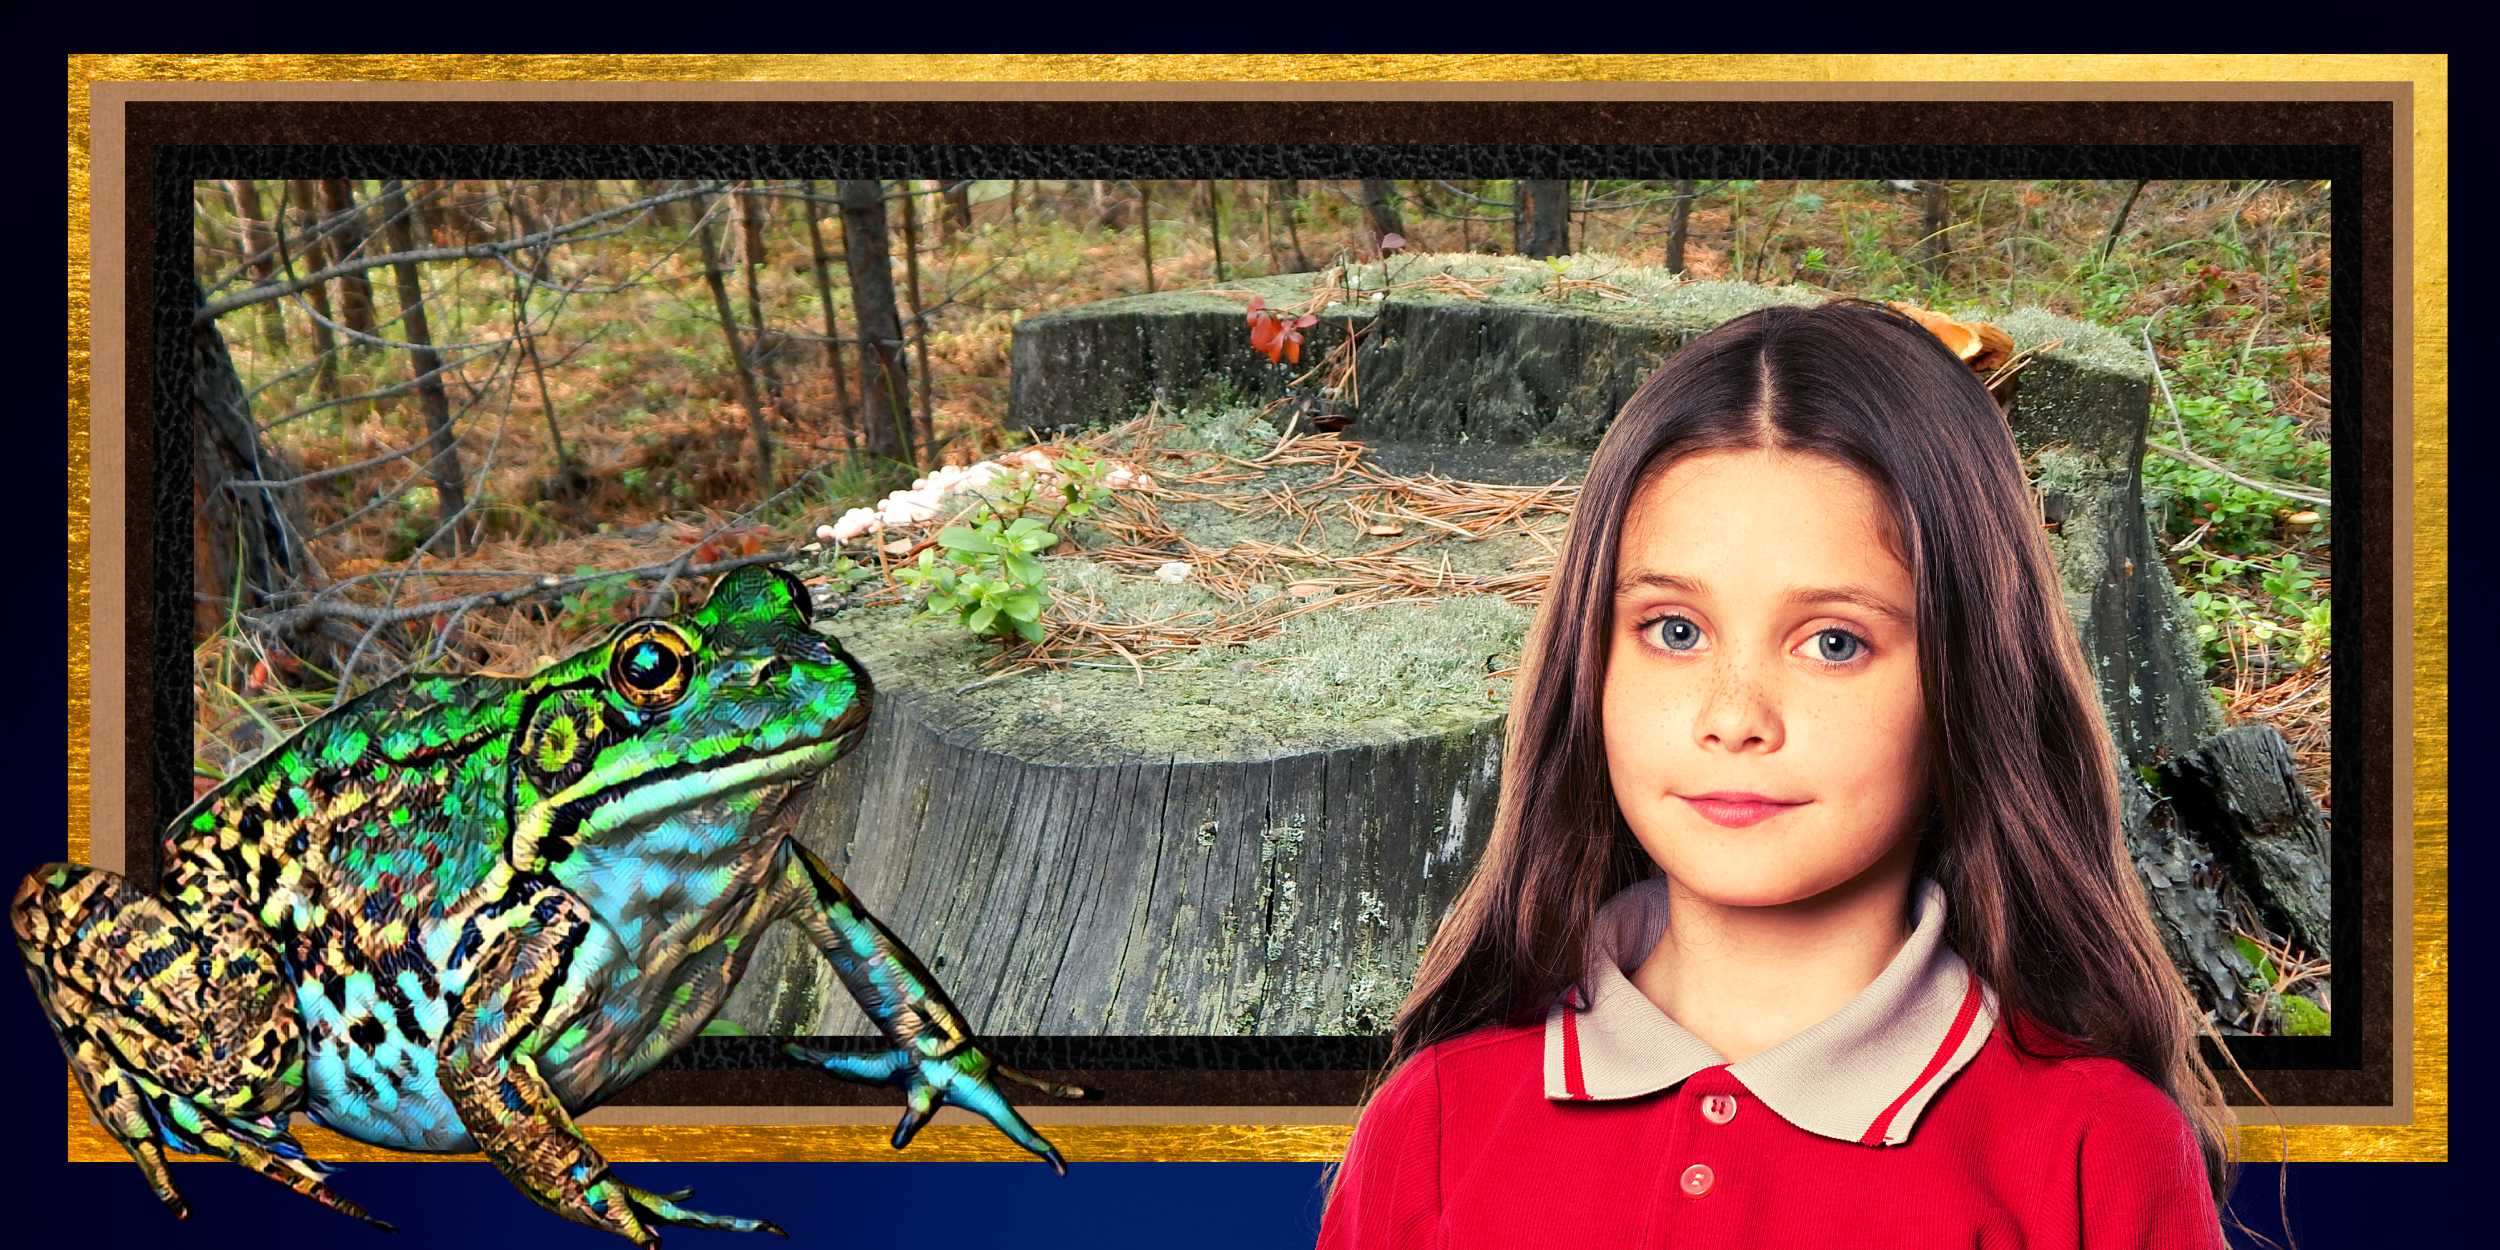 A large green frog, a stump in a wooded clearing, and a young girl with a half serious look on her face.